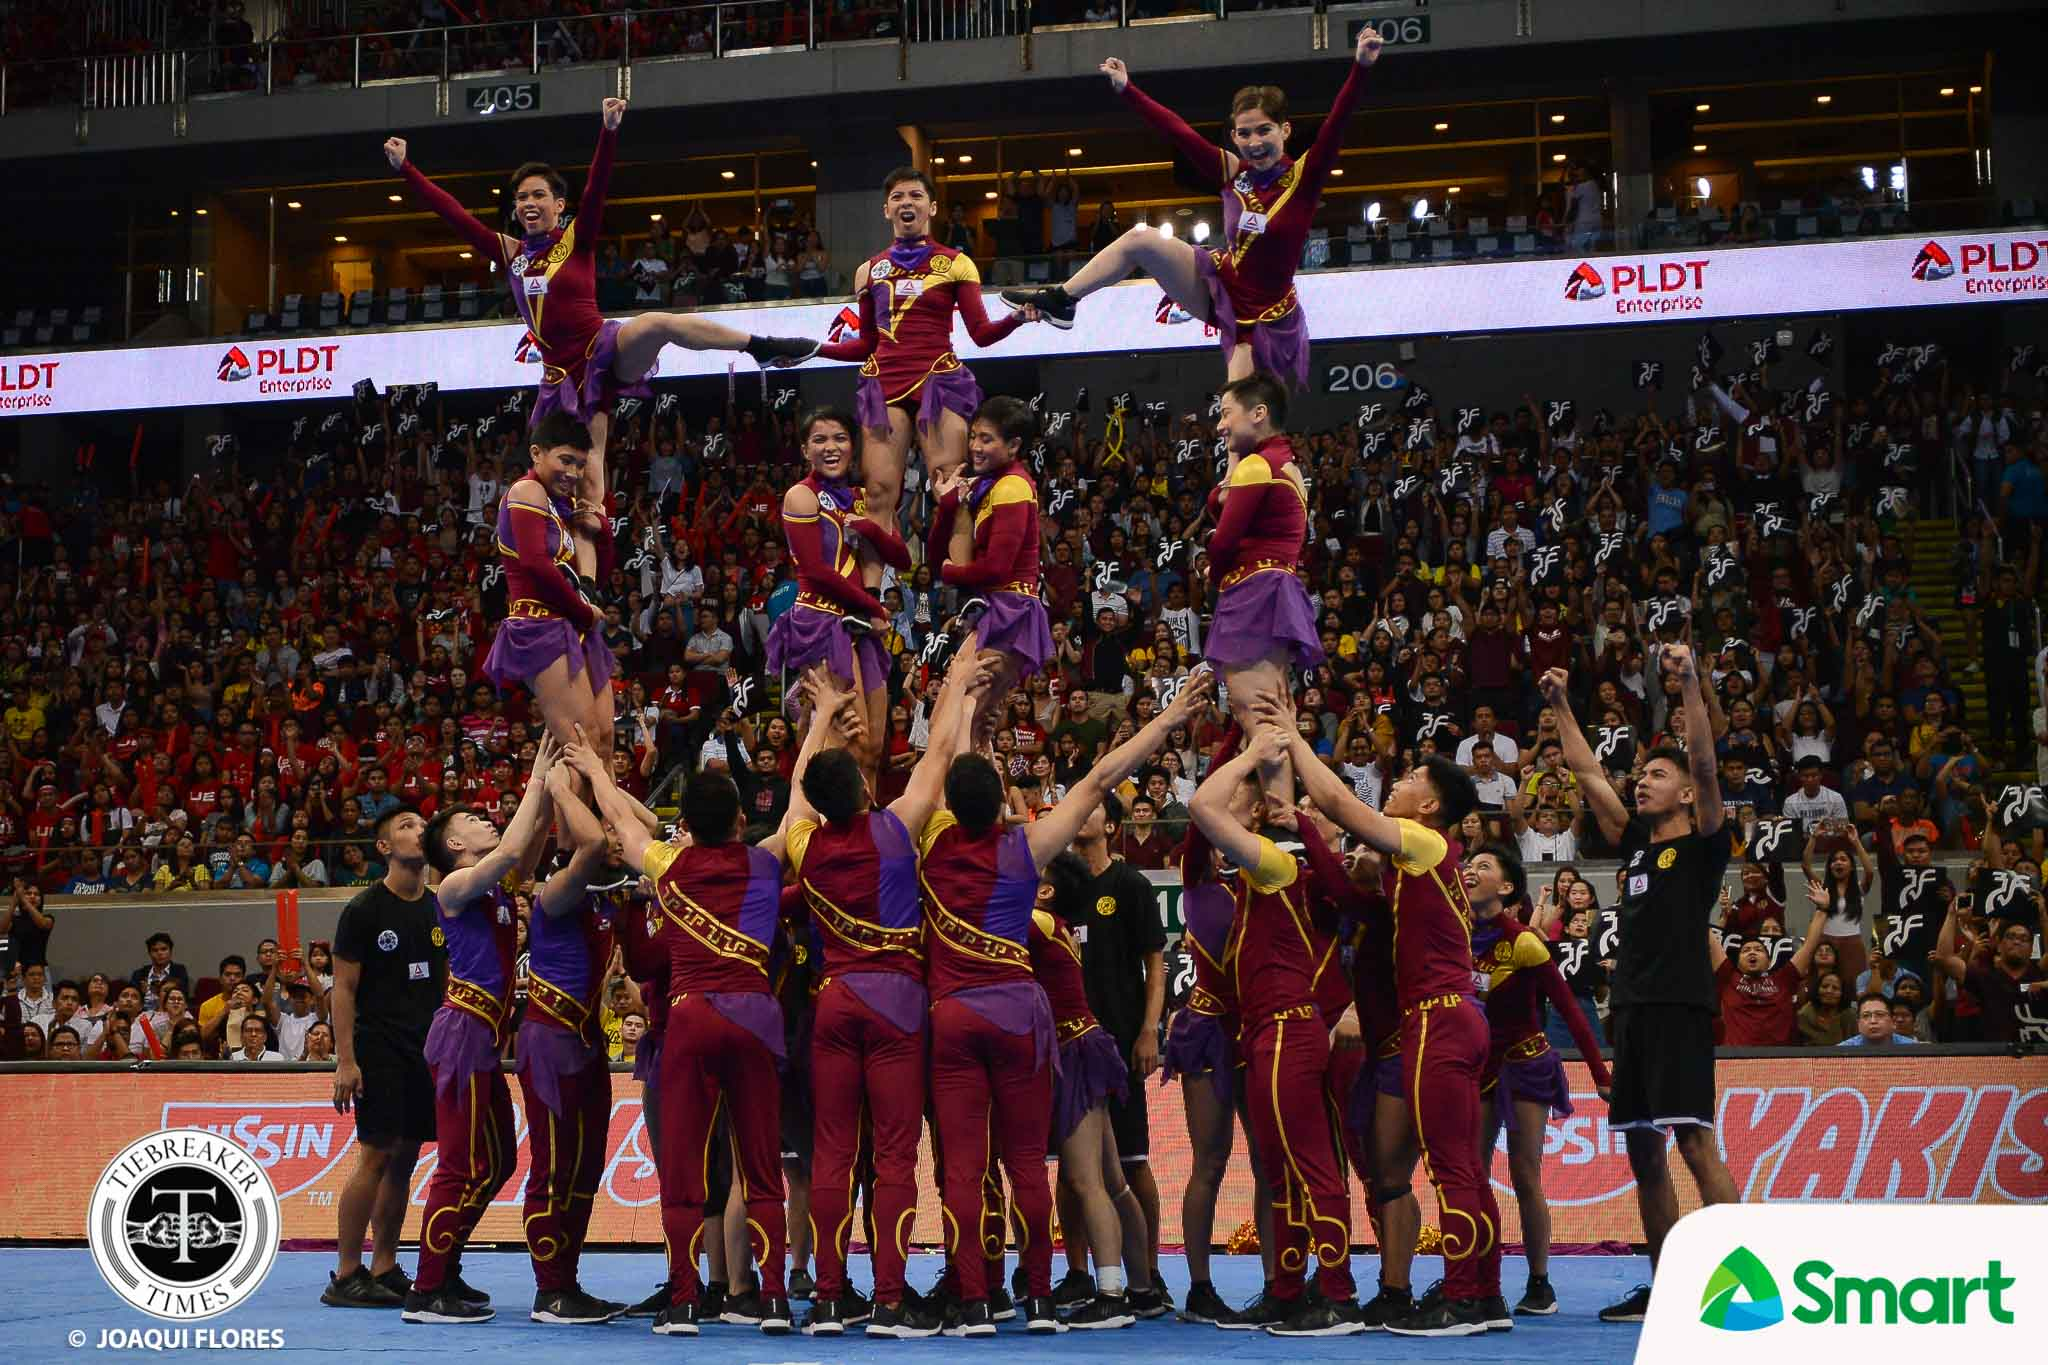 Tiebreaker Times Rookie-laden UP Pep relishes UAAP return Cheerleading News UAAP UP  UP Pep Squad UAAP Season 80 Cheerdance UAAP Season 80 Thea Obanil NJ Antonio Megan Mendoza